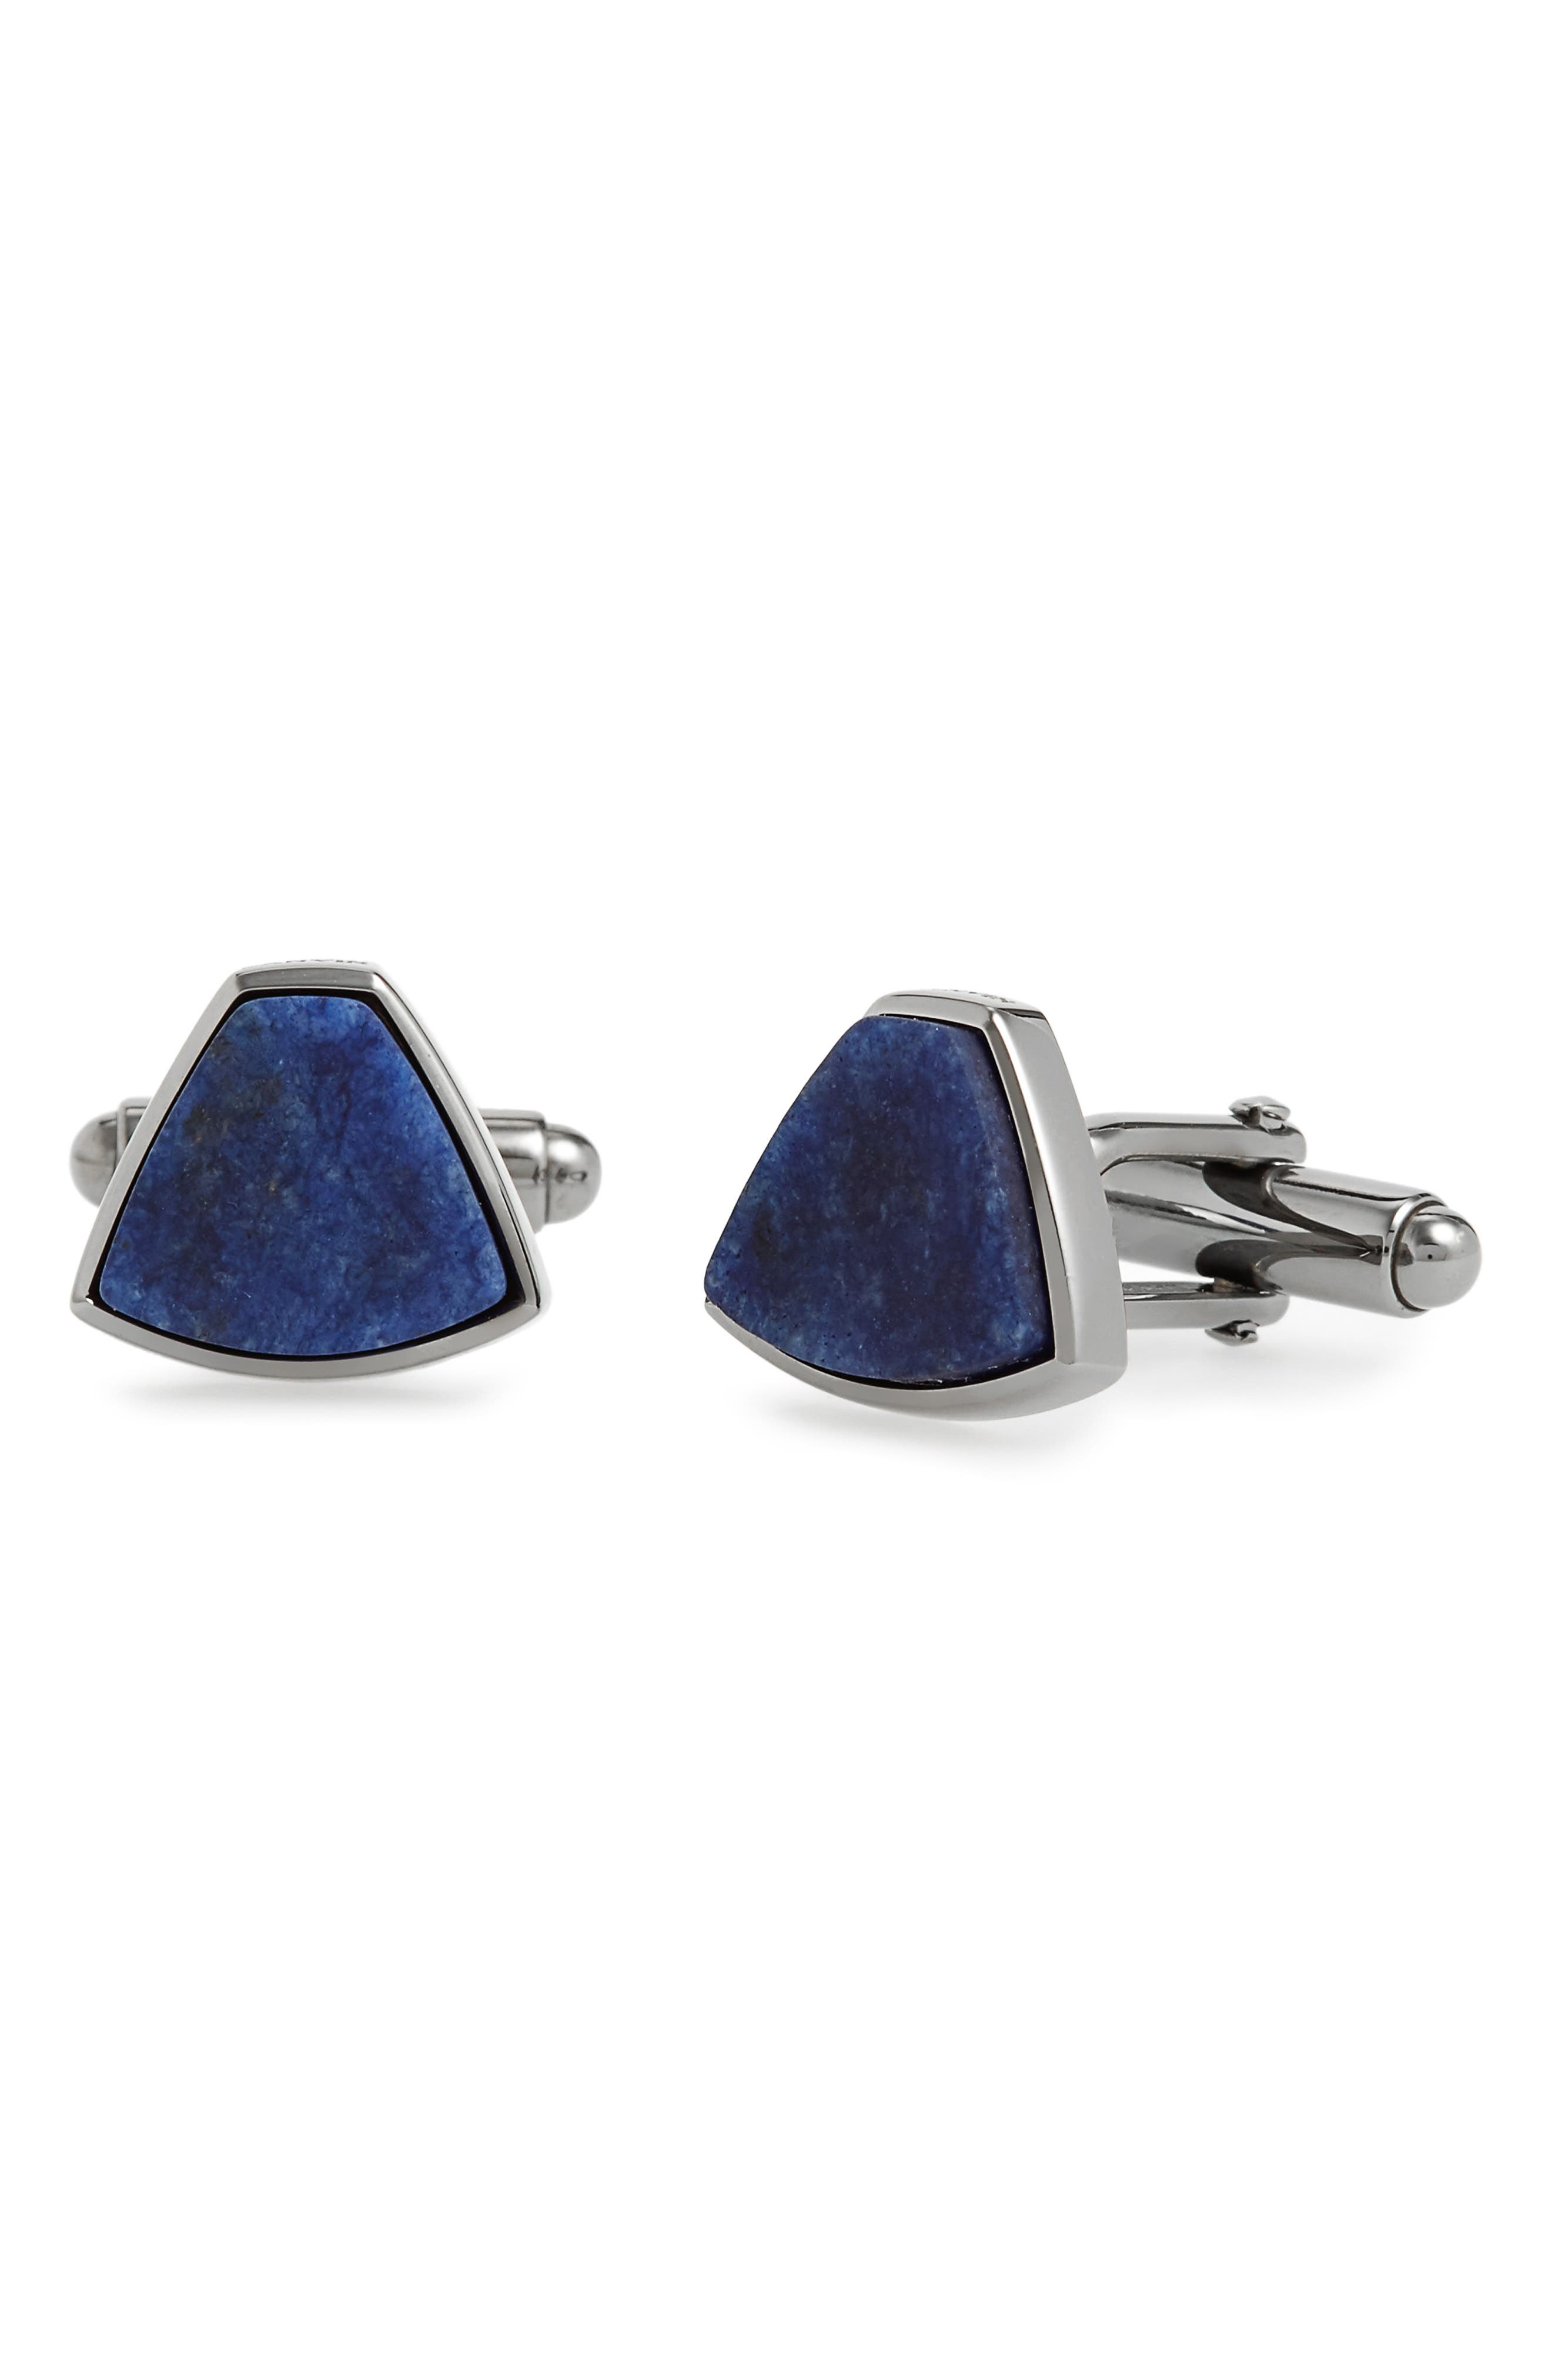 Sodalite Cuff Links,                             Main thumbnail 1, color,